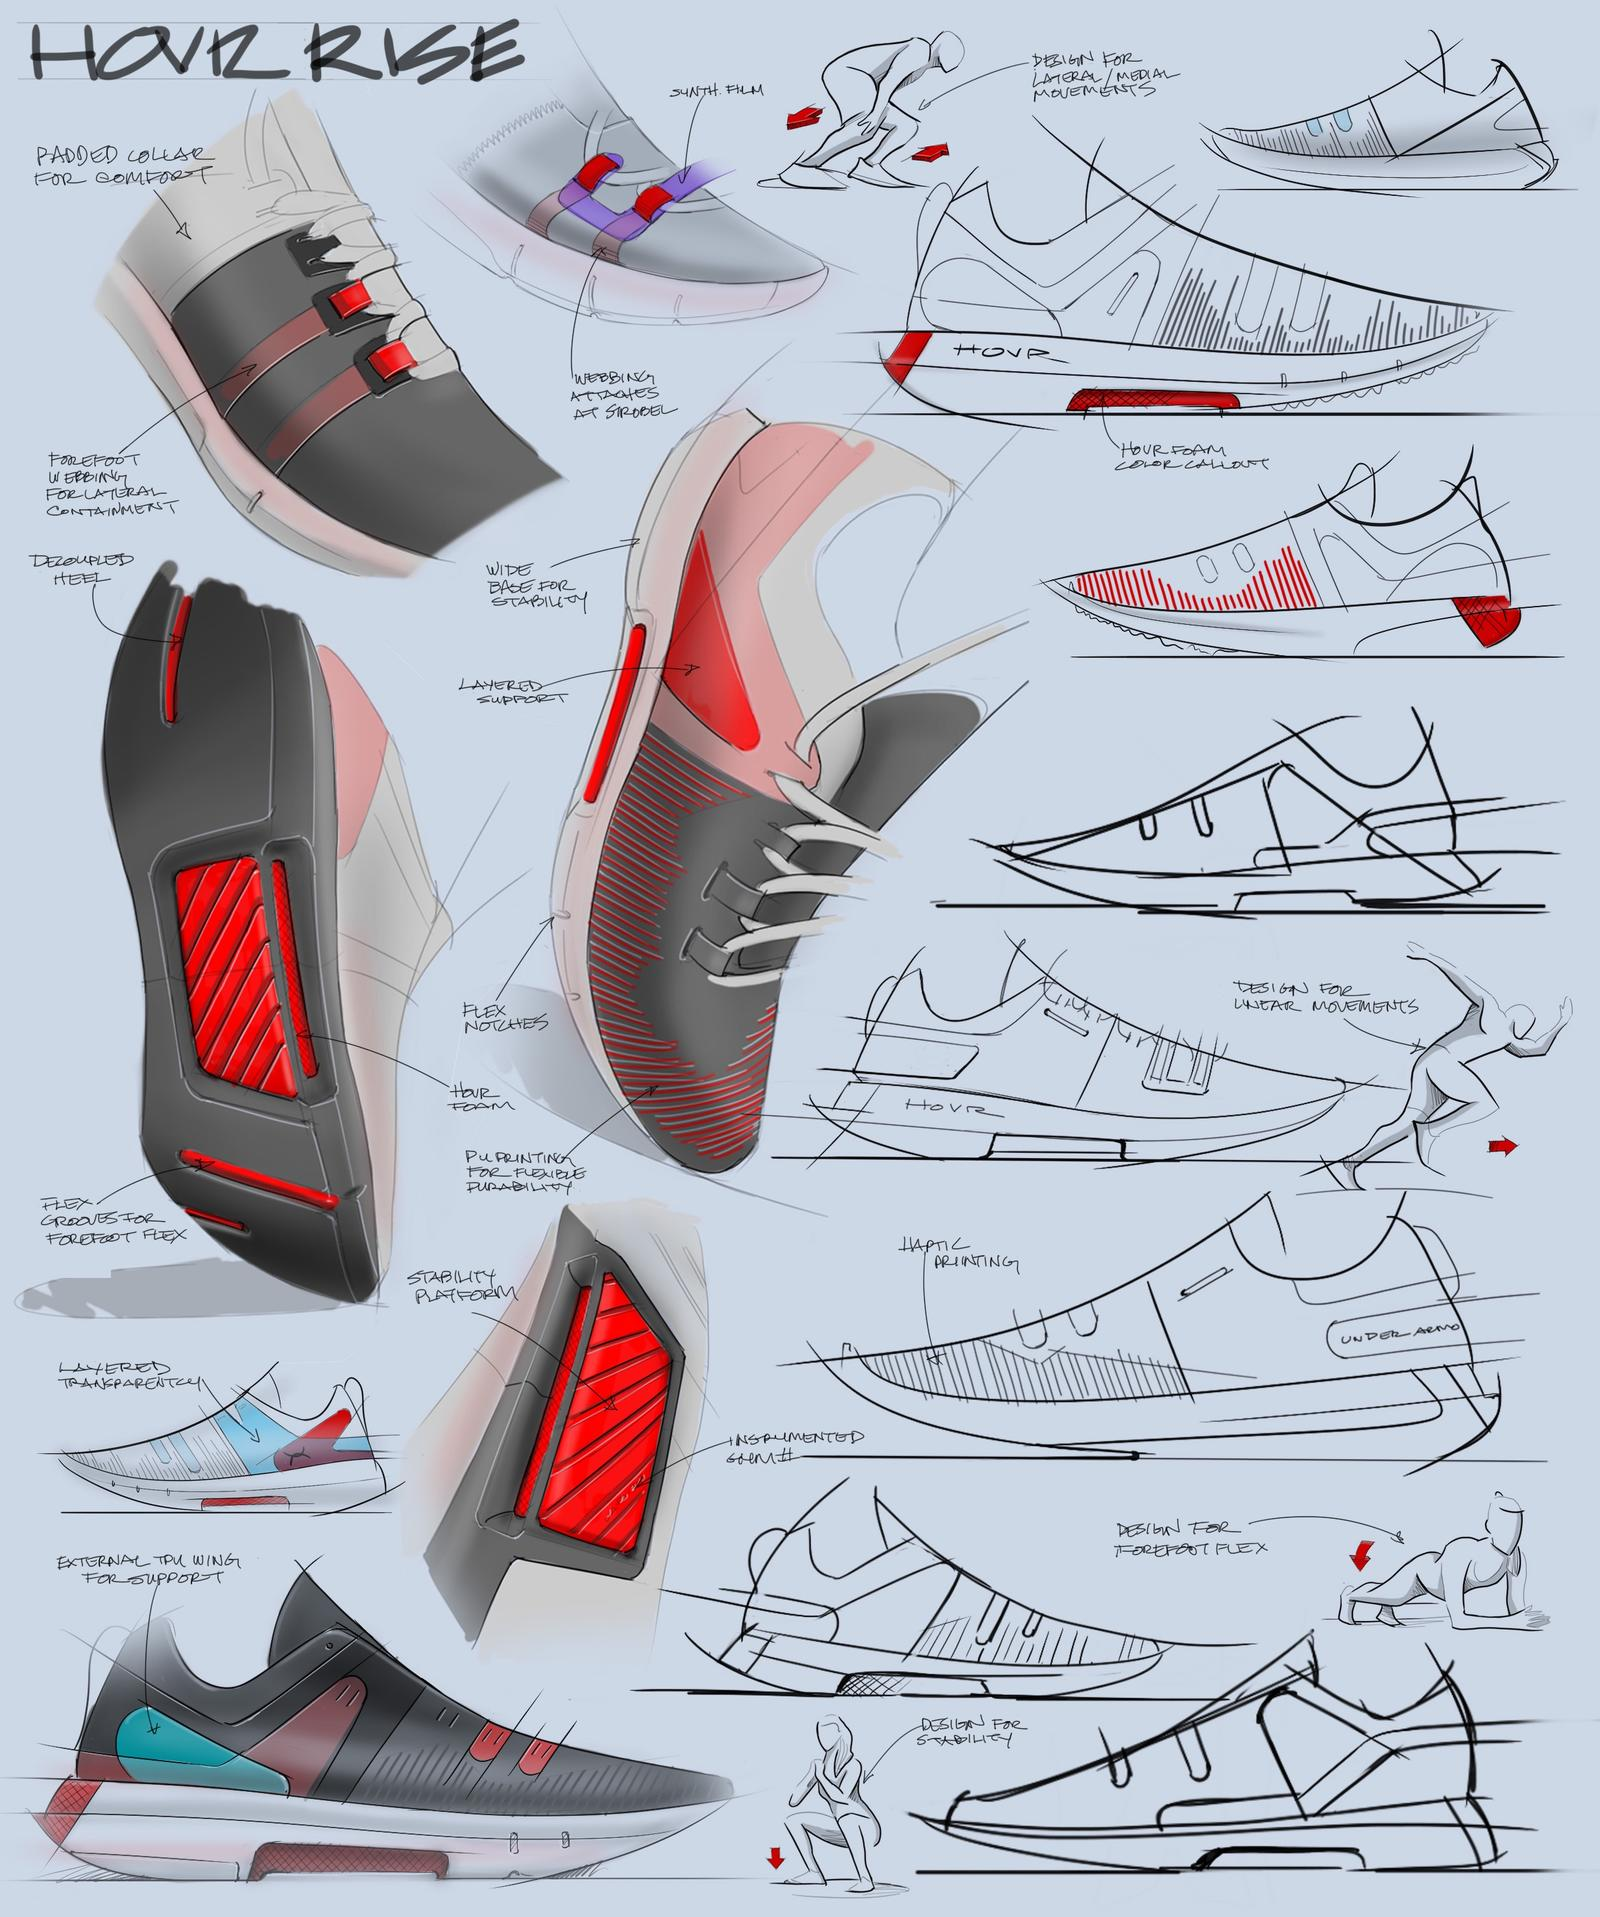 The above image is a sketch page from the UA HOVR Rise designer, Evan Lok, during the ideation period for the versatile training shoe